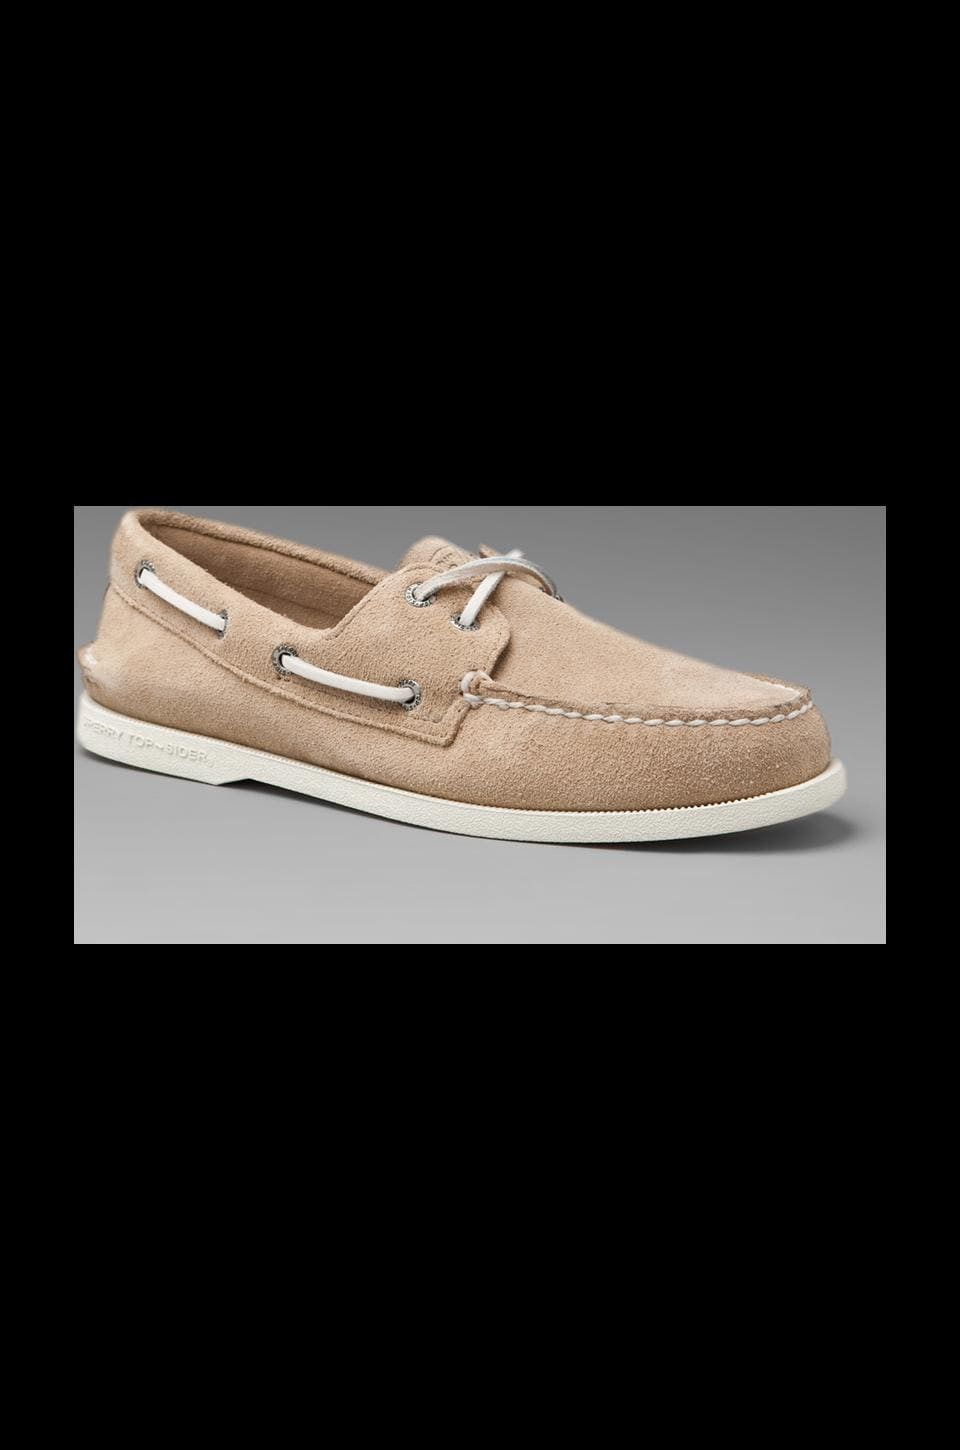 Sperry Top-Sider Cloud Collection A/O in Sand Suede